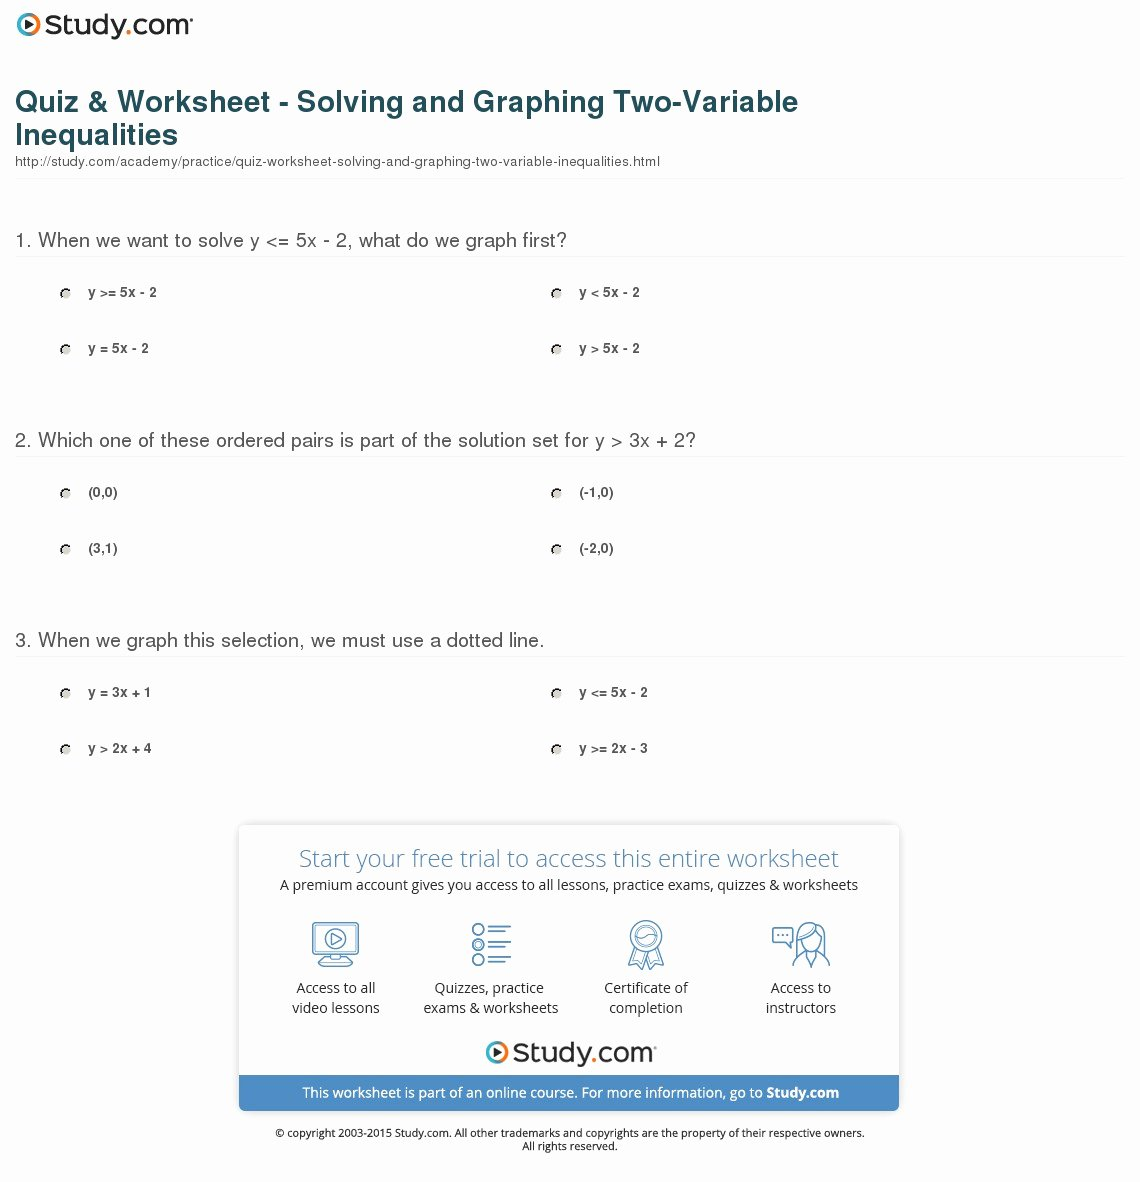 Solving Inequalities Worksheet Answer Key Luxury Quiz & Worksheet solving and Graphing Two Variable